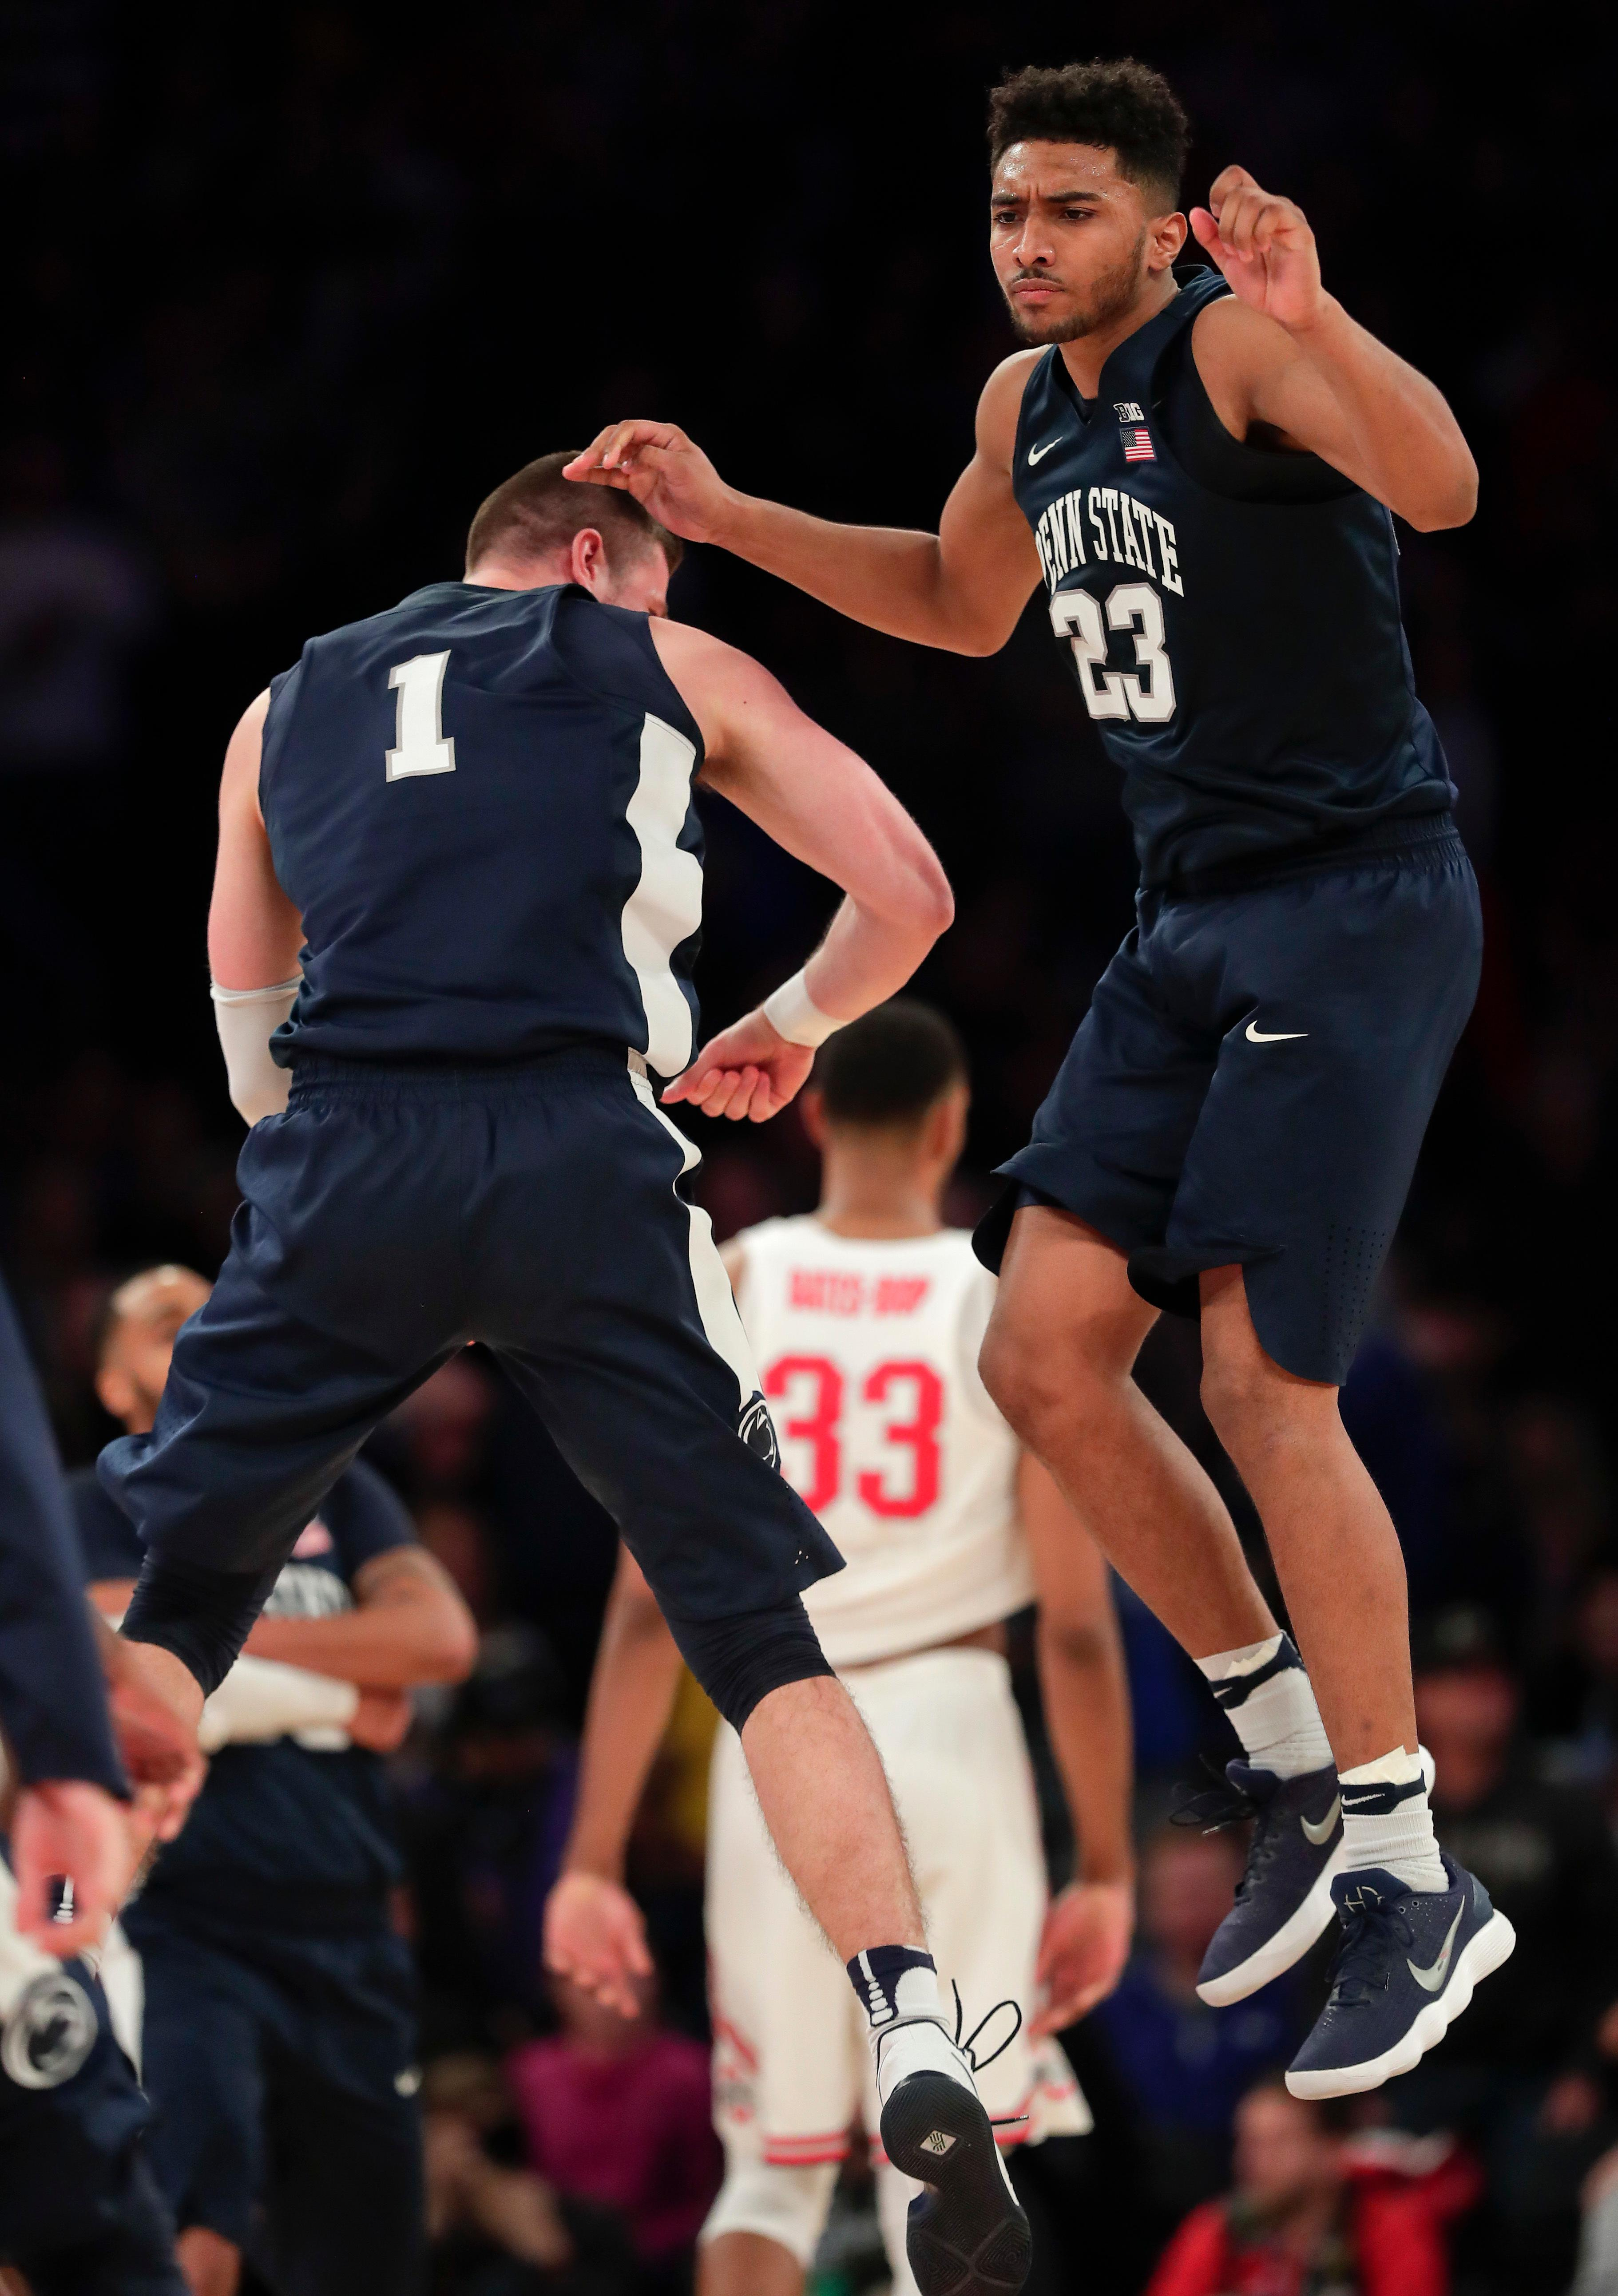 Penn State guard Josh Reaves (23) celebrates with forward Deividas Zemgulis (1) after Penn State beat Ohio State 69-68 in an NCAA Big Ten Conference tournament college basketball game, Friday, March 2, 2018, in New York. (AP Photo/Julie Jacobson)